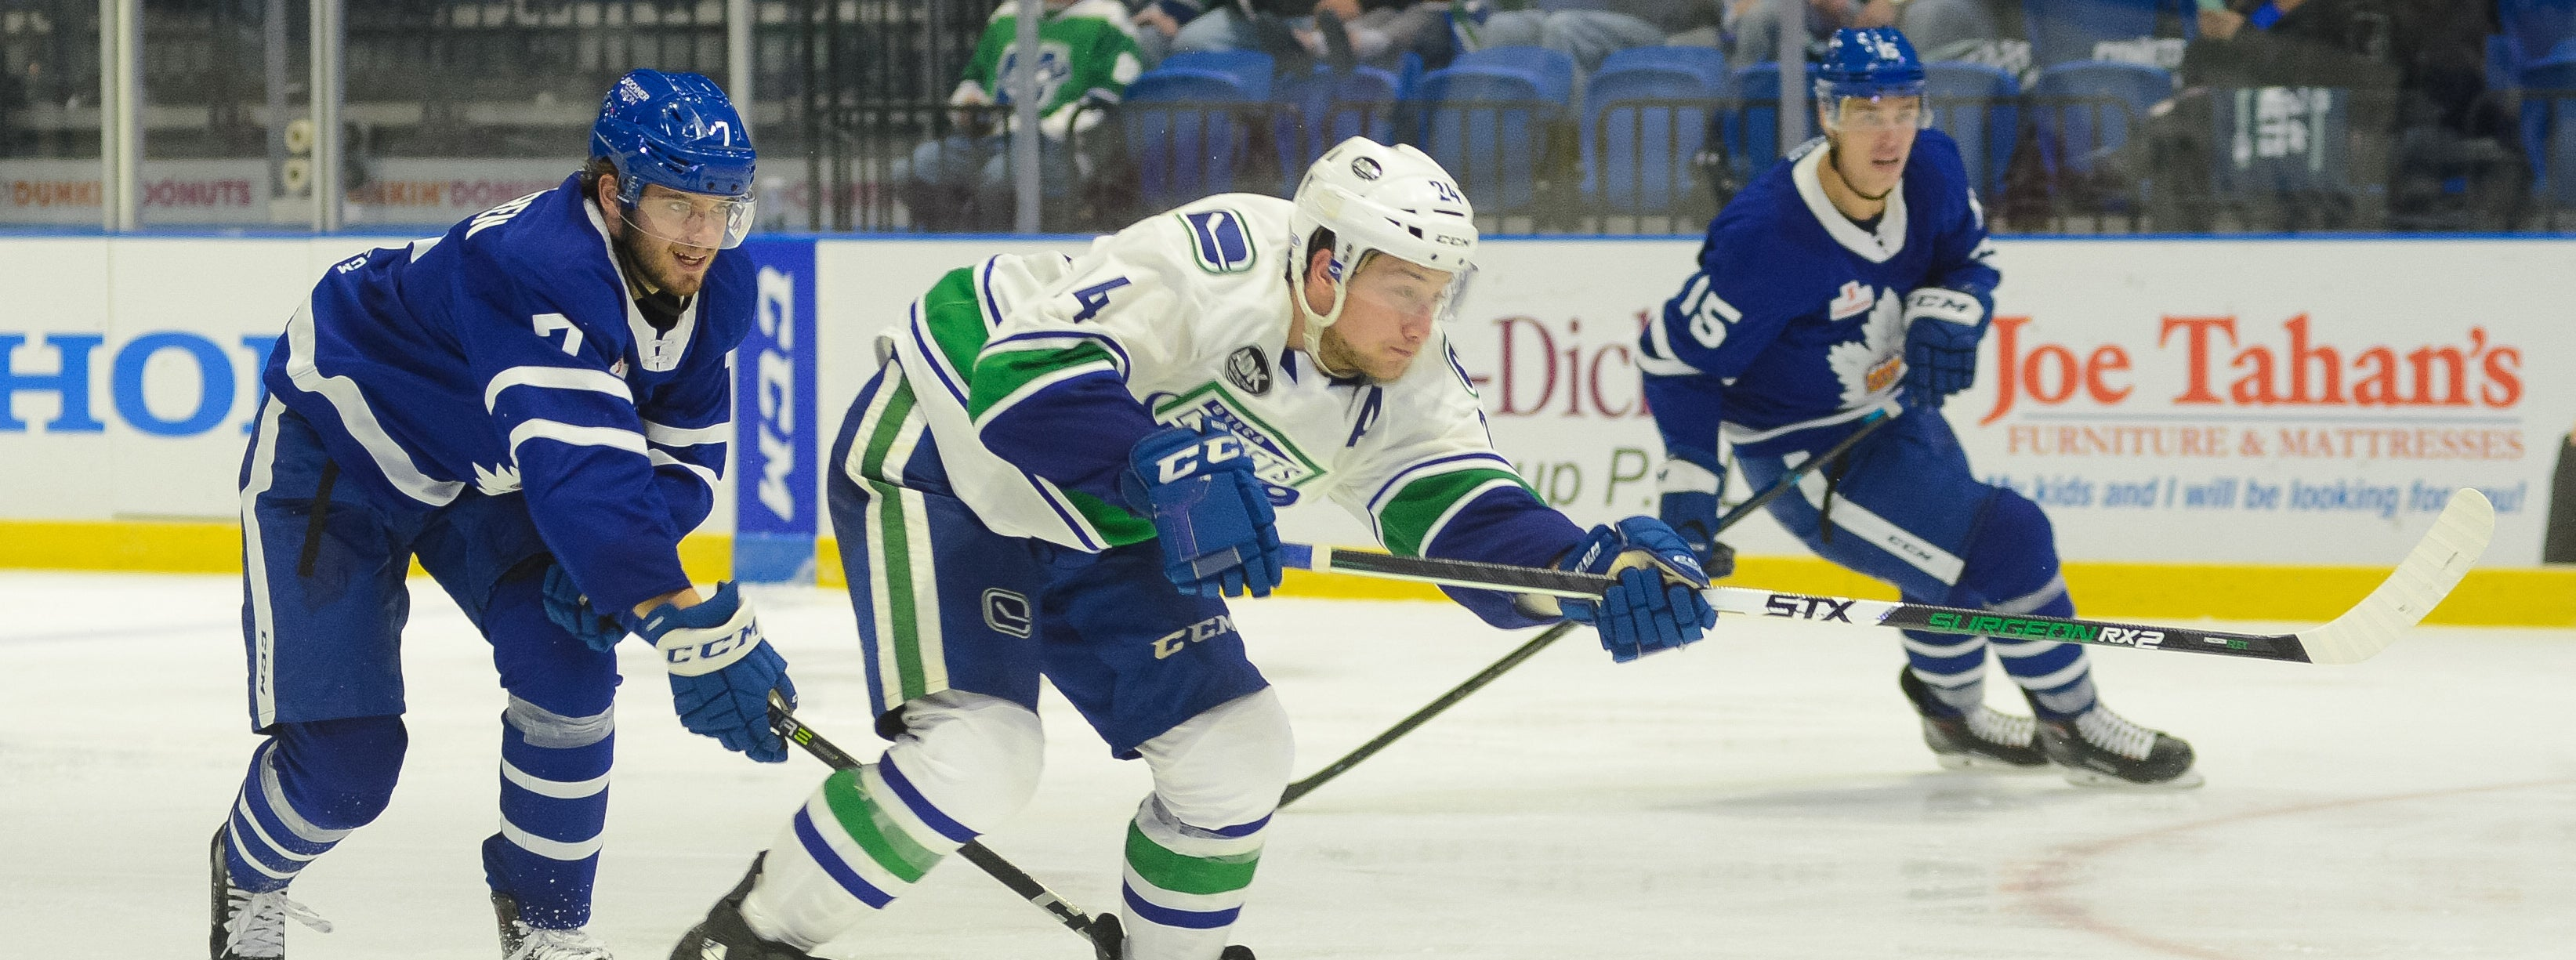 COMETS RENEW RIVALRY WITH MARLIES